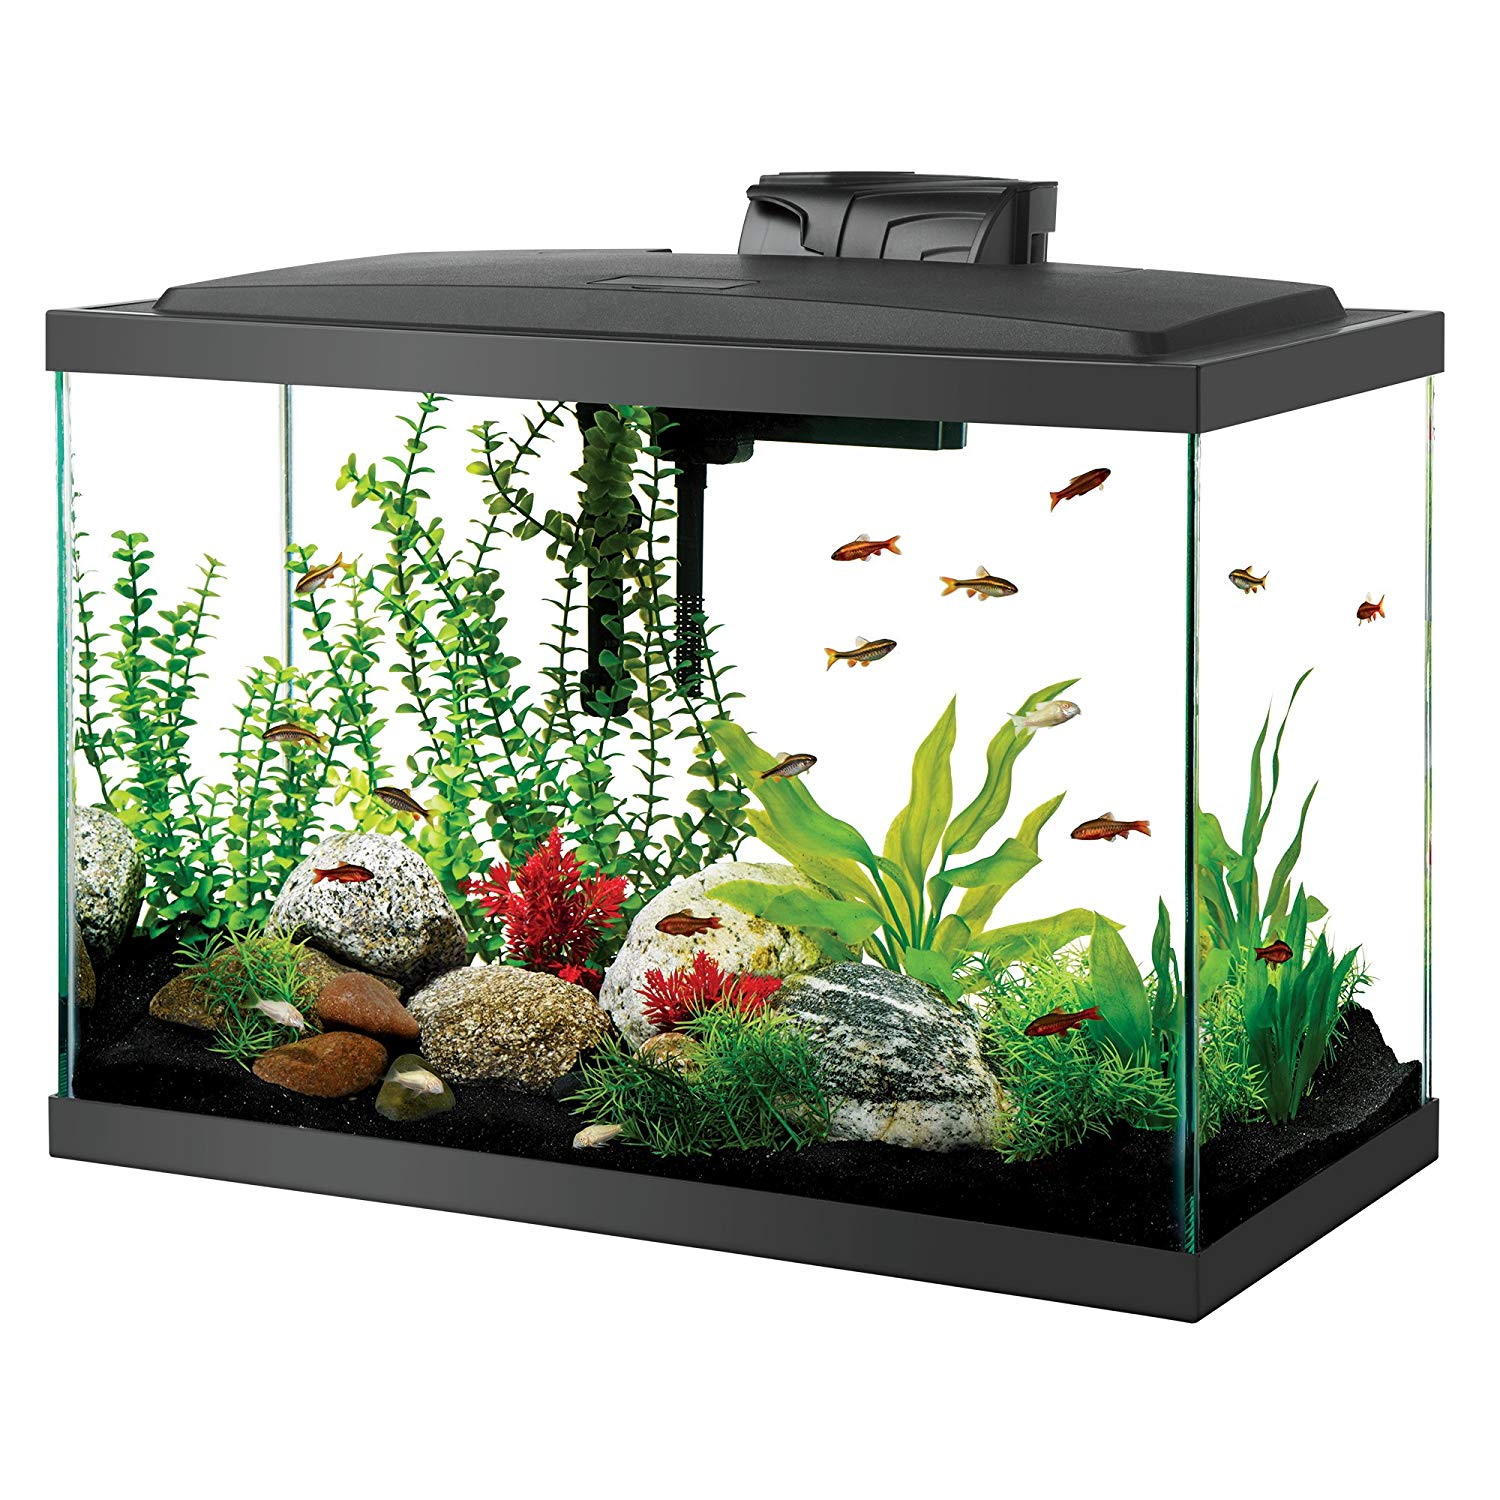 Aqueon Goldfish Aquarium Starter Kit with LED Lighting review by www.puppyurl.com